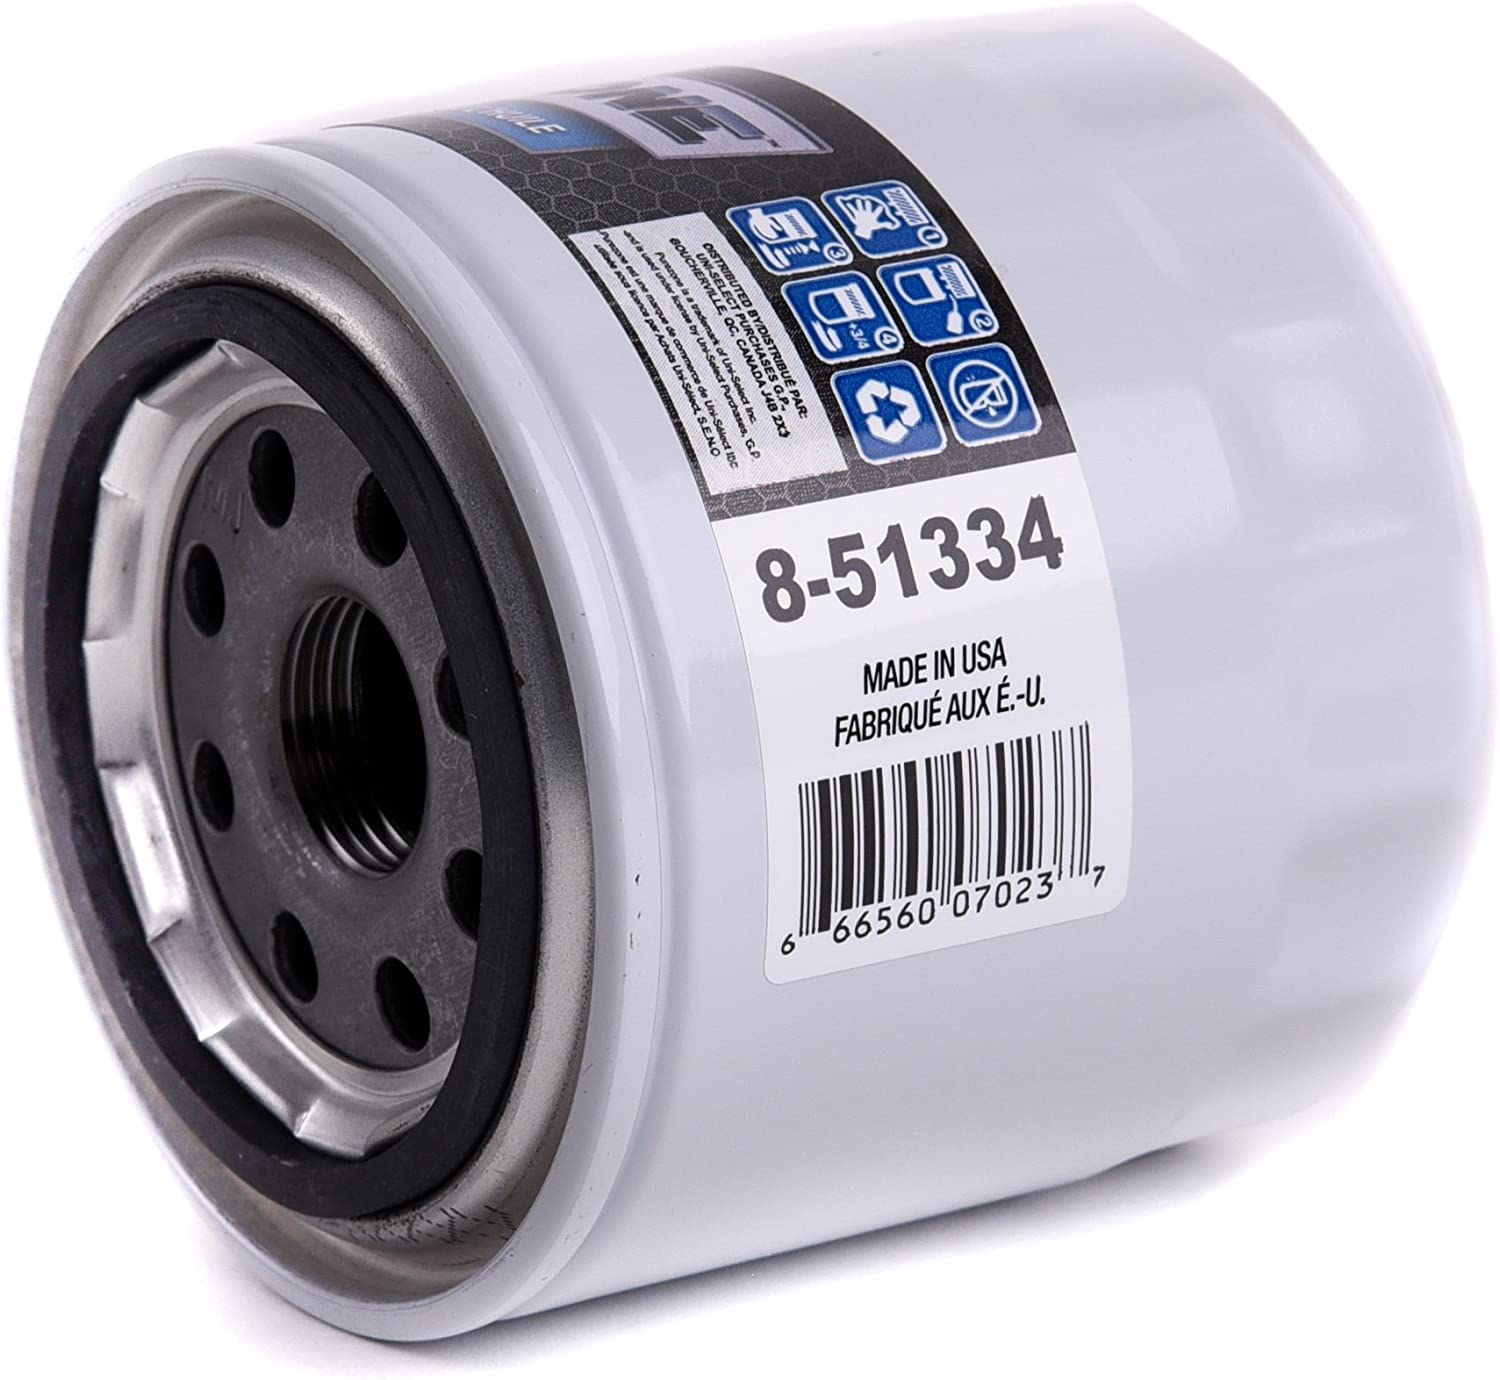 Pack of 1 8-51334 PUREZONE Spin-On Oil Filter Filtre /à huile